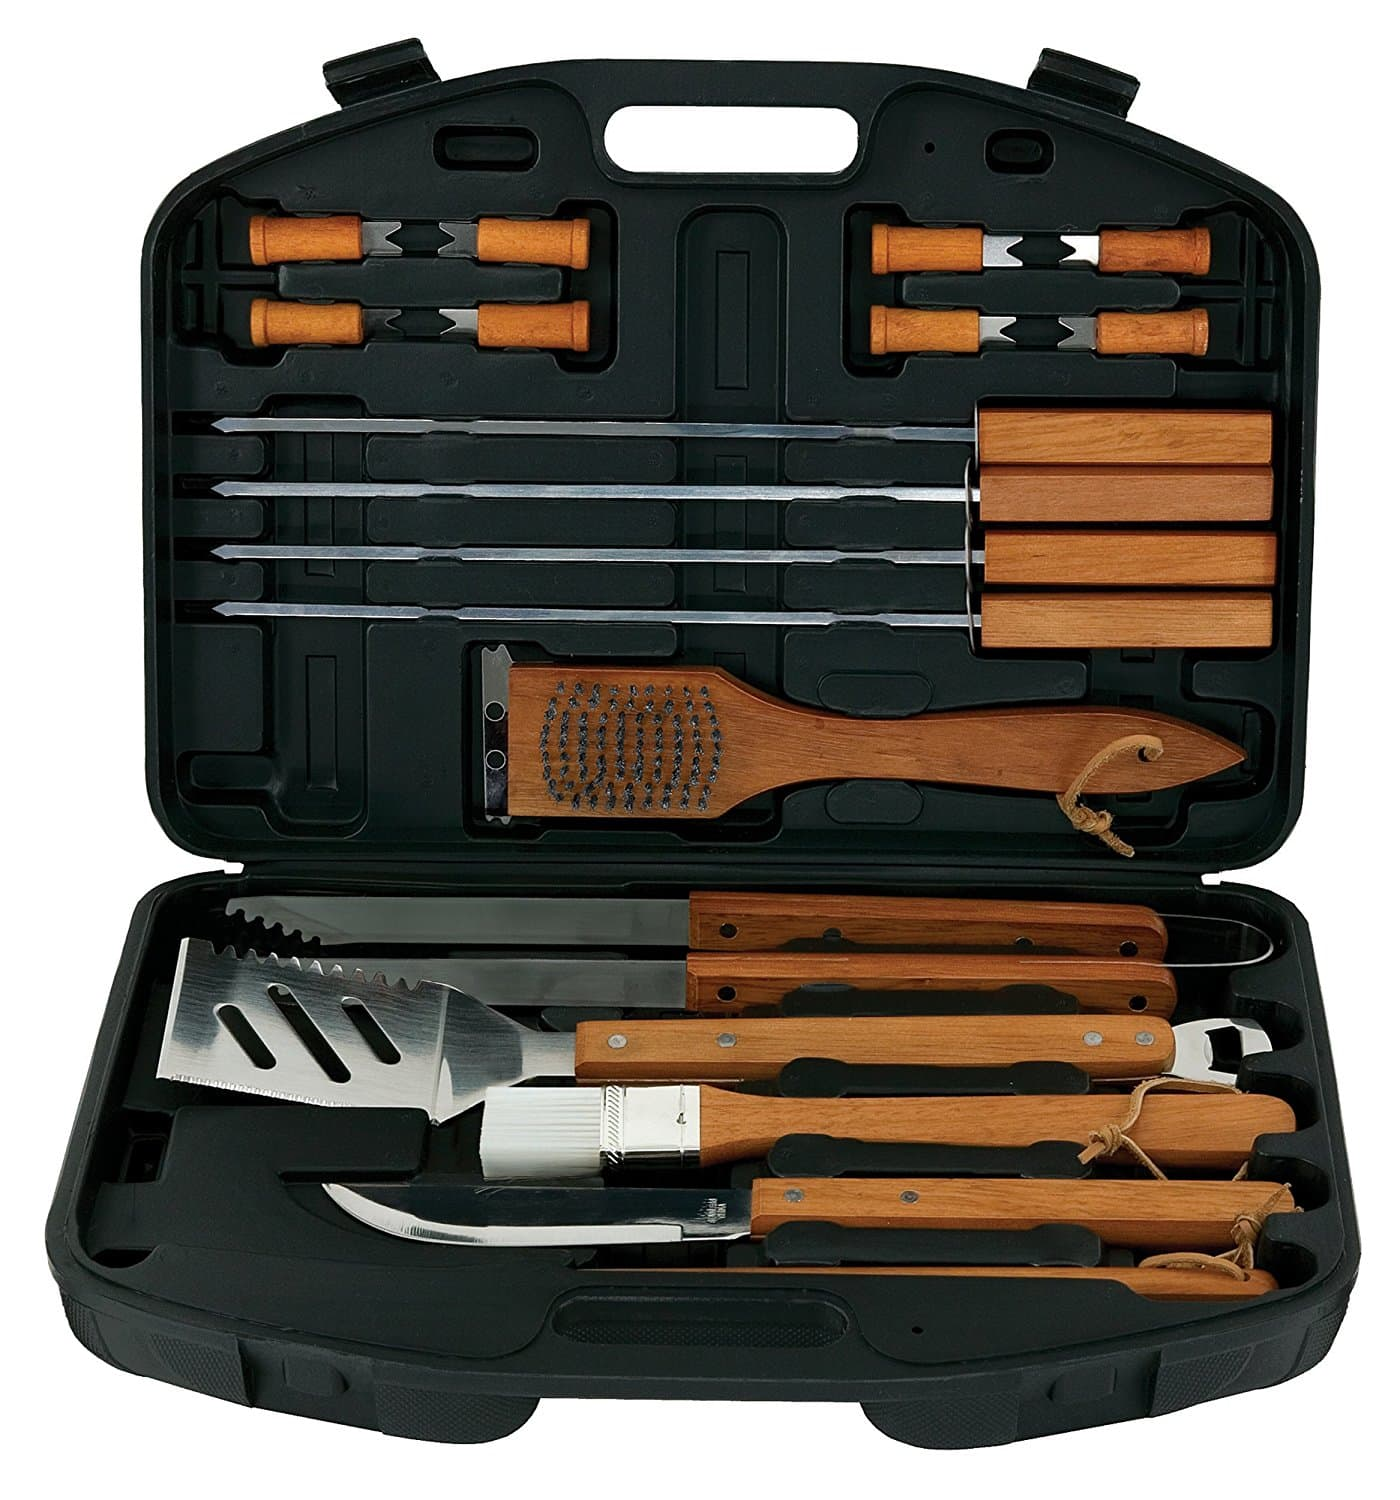 Mr. Bar-B-Q 18-Piece Stainless-Steel Barbecue Set with Storage Case Prime $9.16